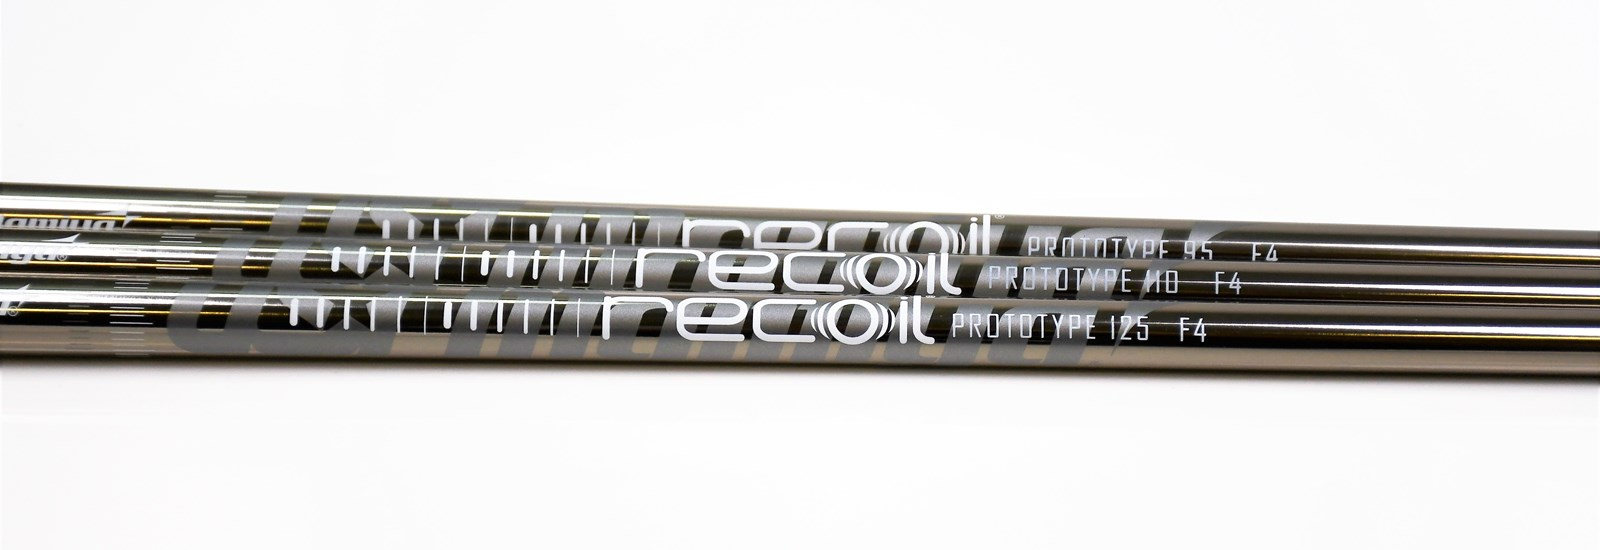 Recoil 110 Prototype Iron